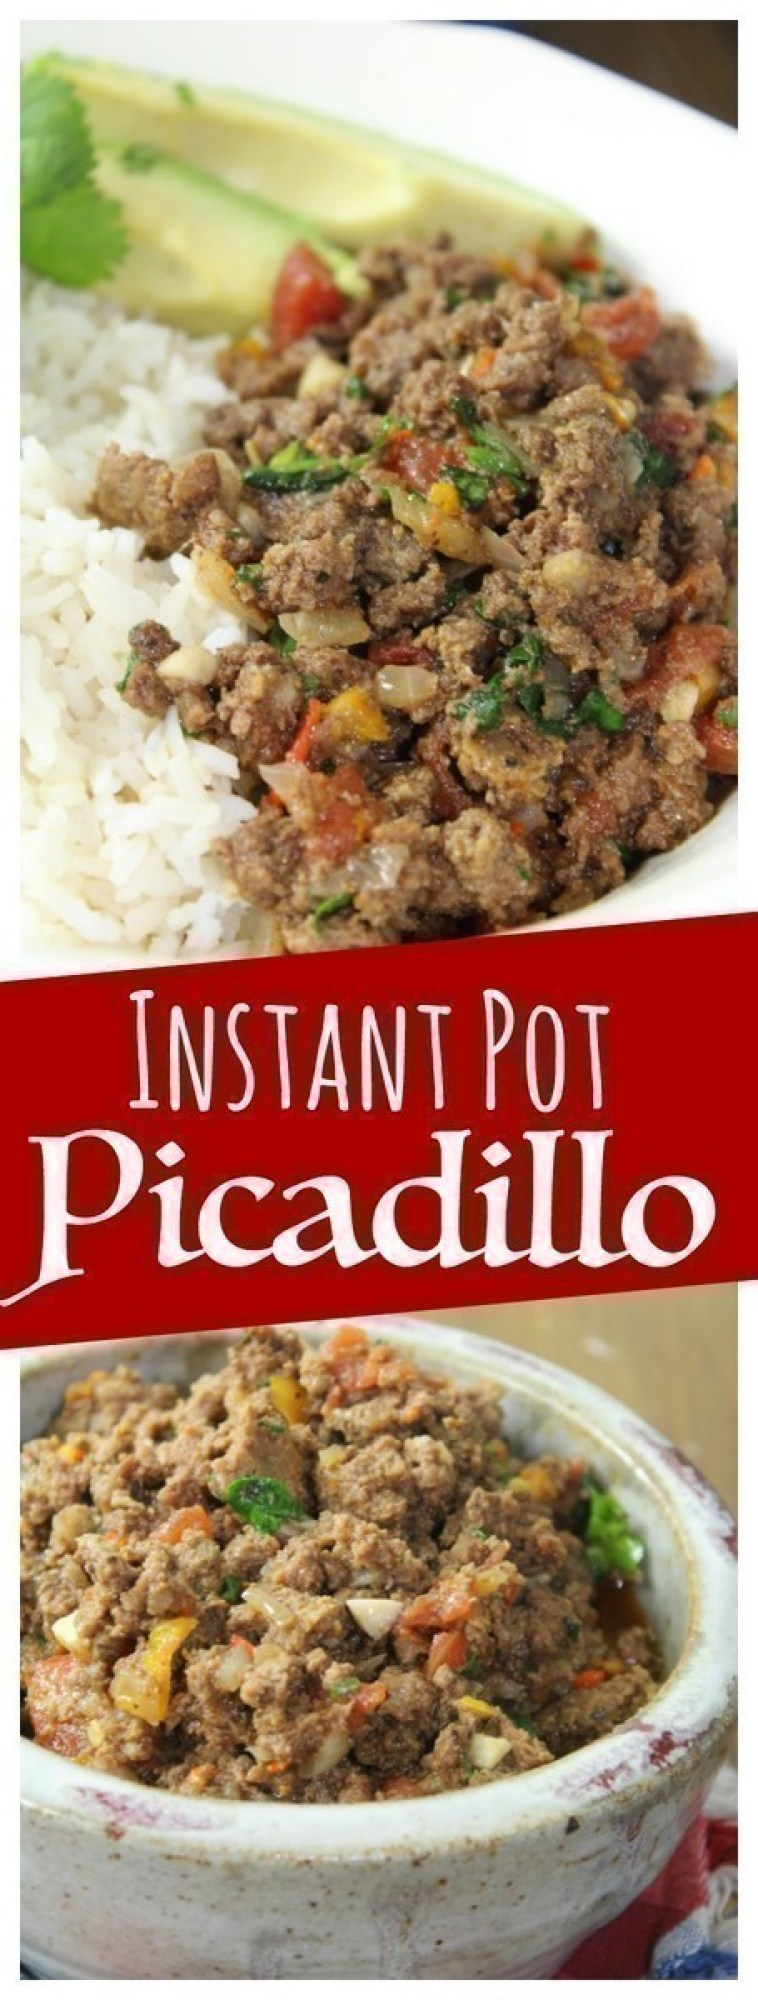 Ground beef, peppers, garlic and onion come together in this easy, kid favorite, that we adapted for the Instant Pot!